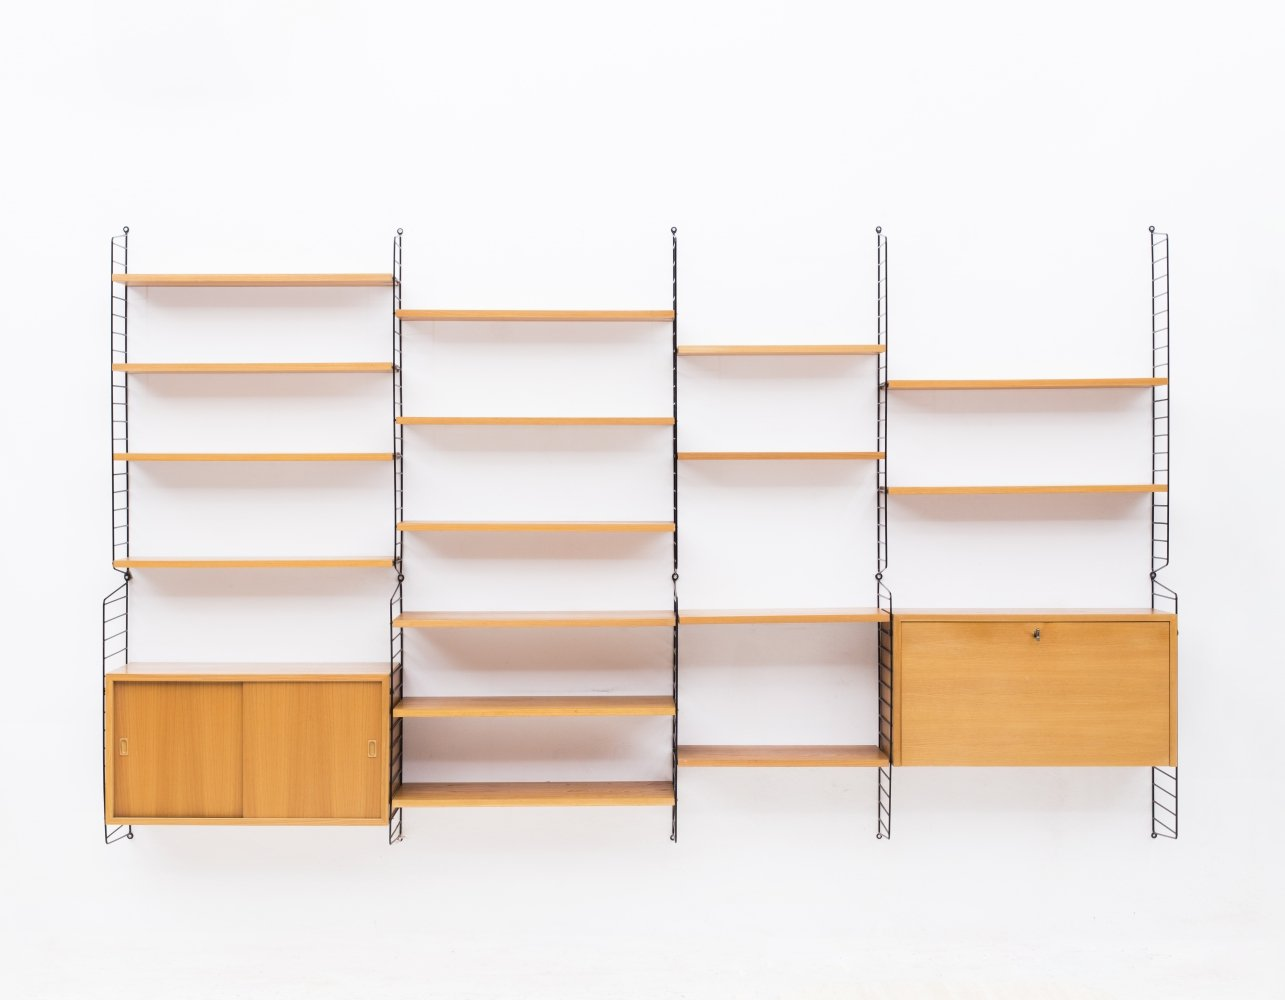 4–Bay wall unit by Nisse Strinning for String, Sweden 1950